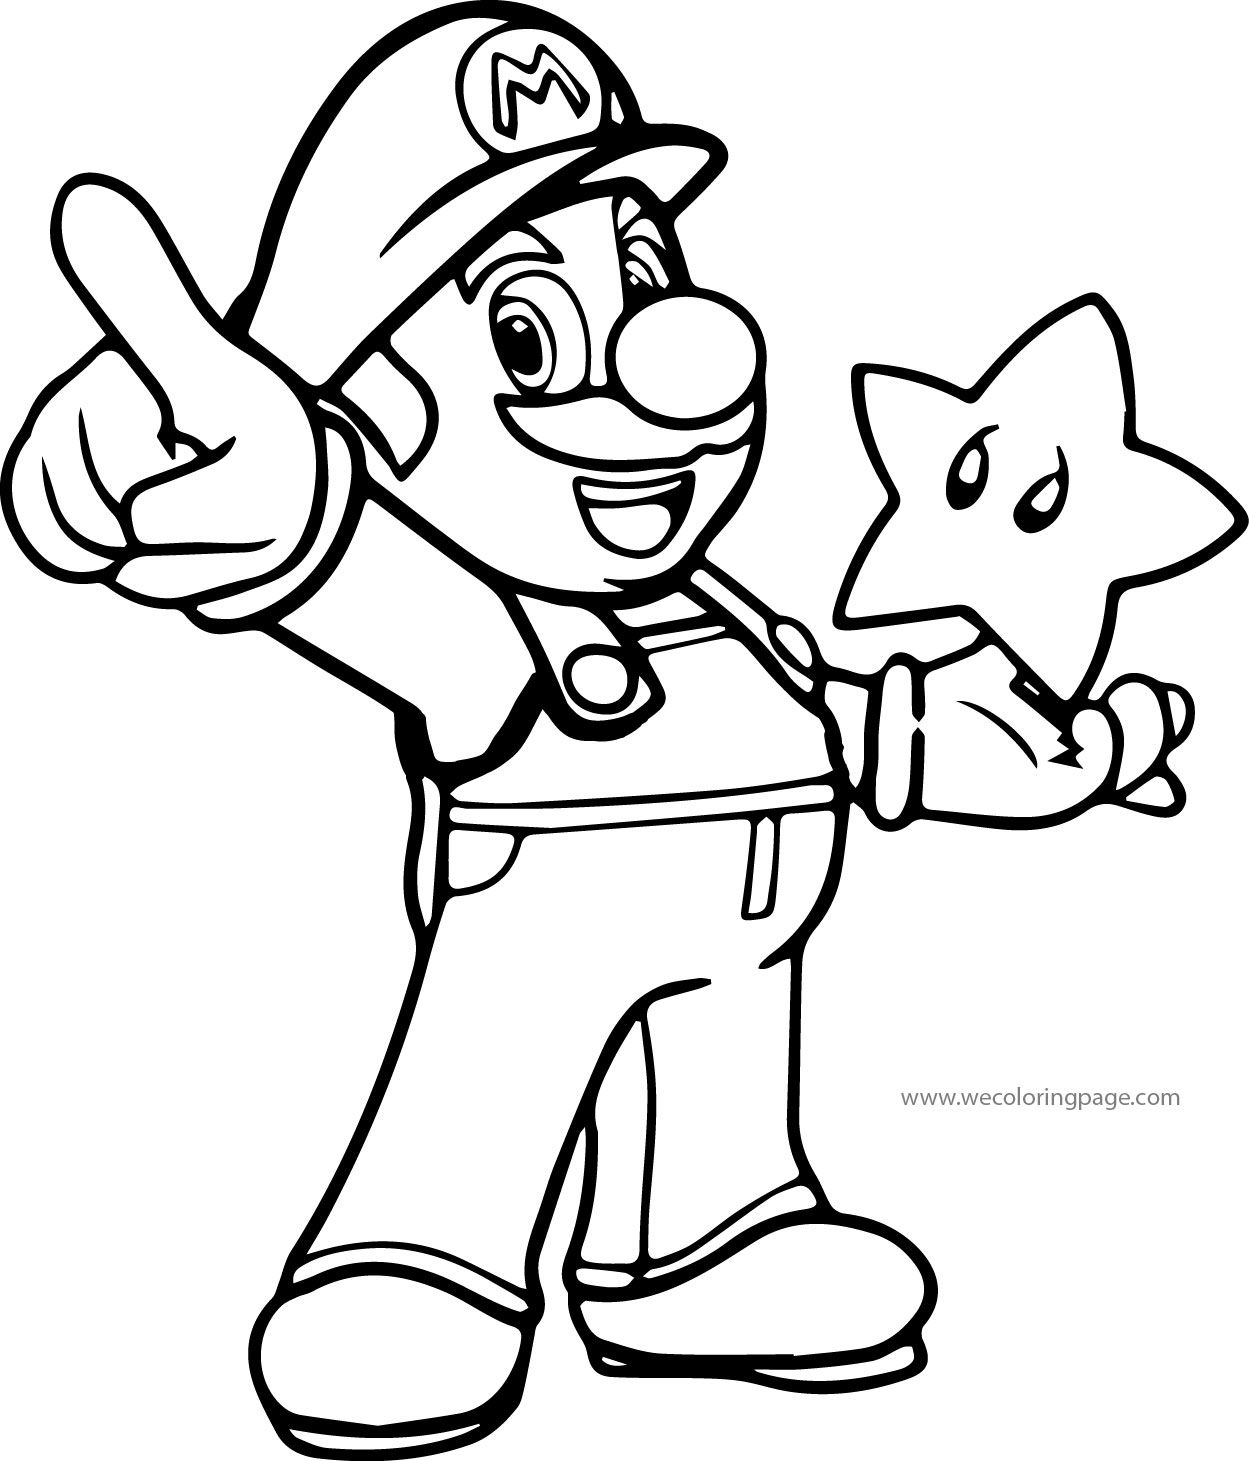 How to Draw Luigi from Super Mario with Simple Step by Step Drawing ...